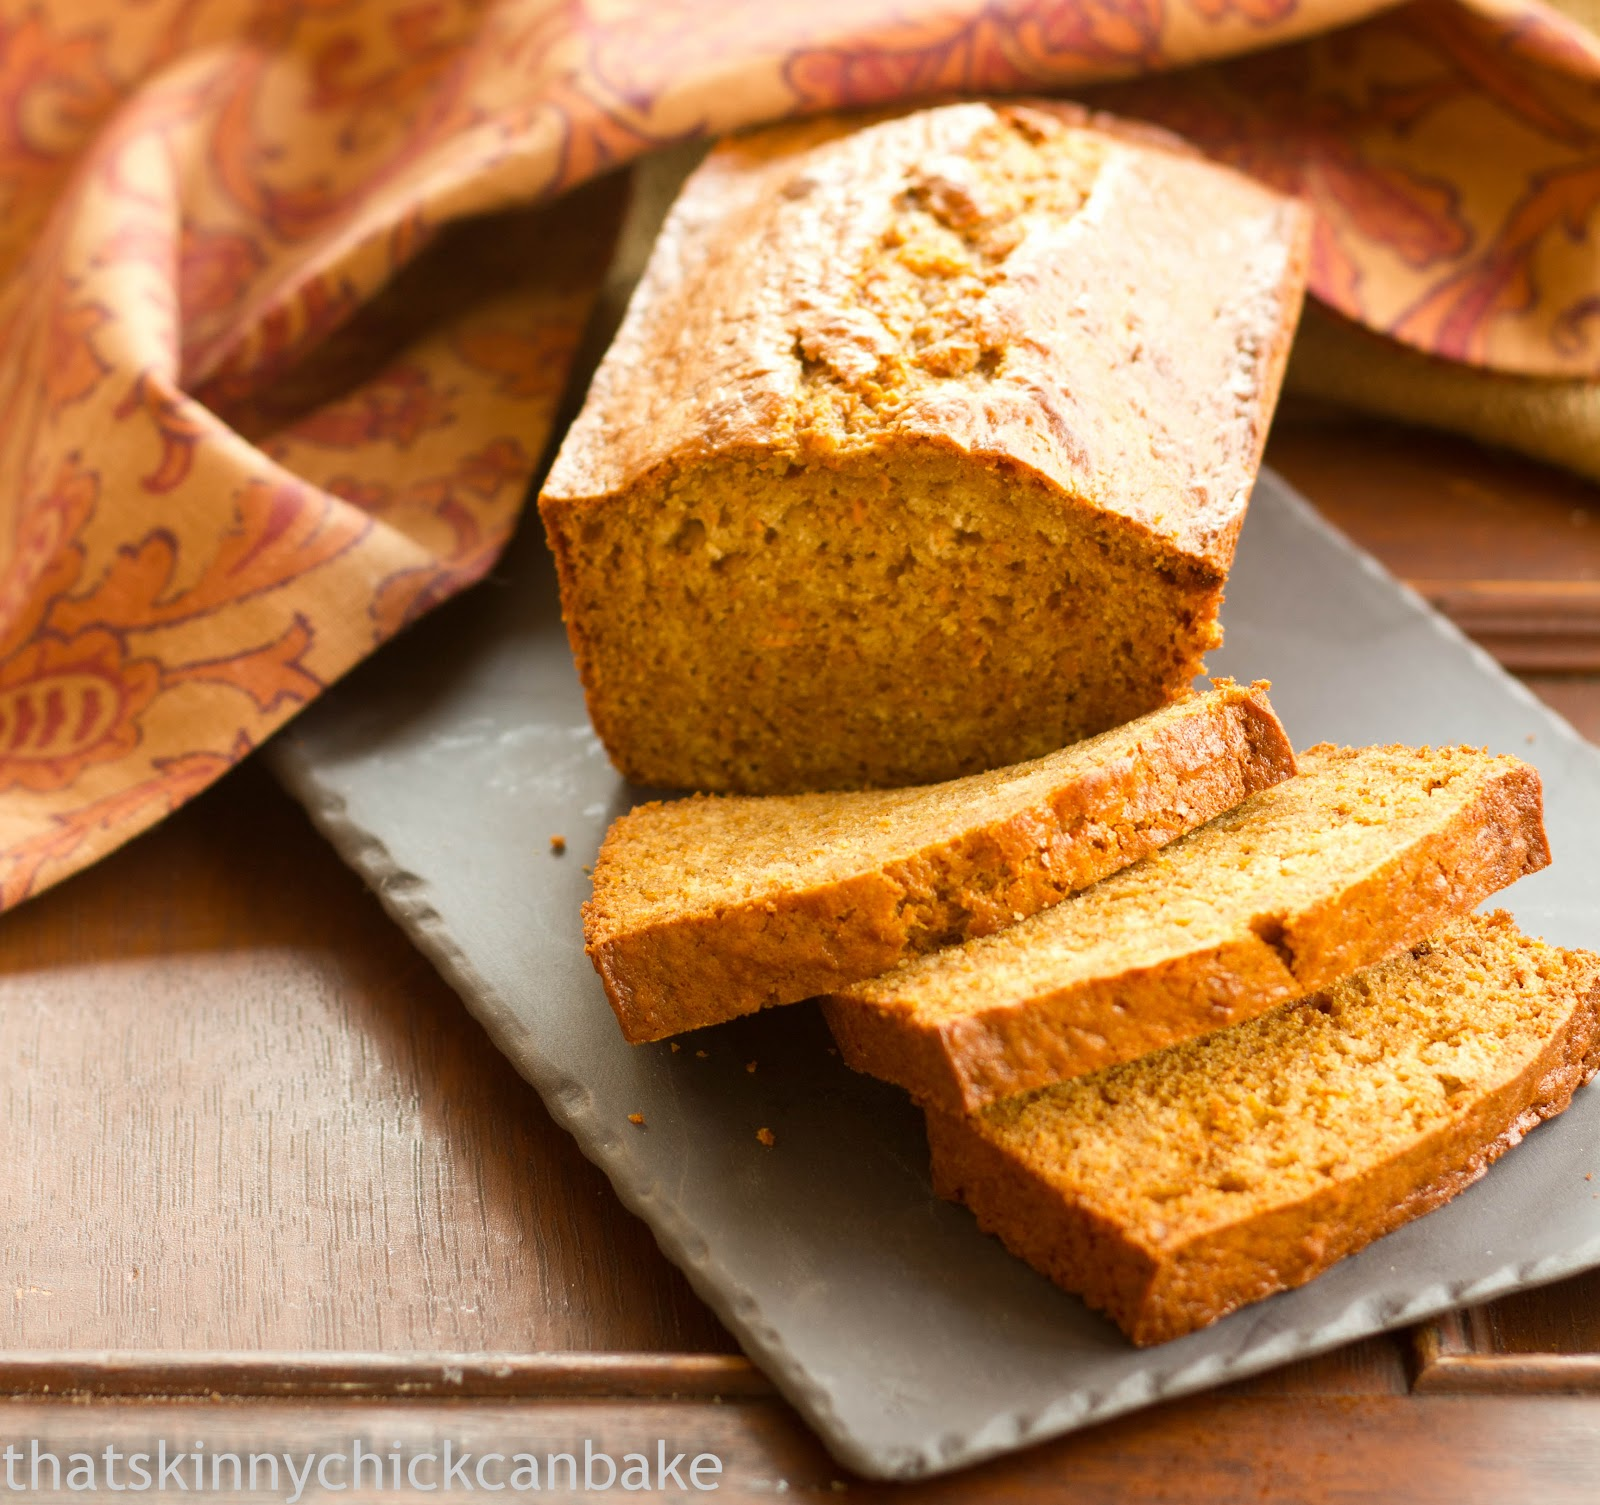 ... sweet potato bread 3 600 jpg spiced sweet potato bread maple sweet